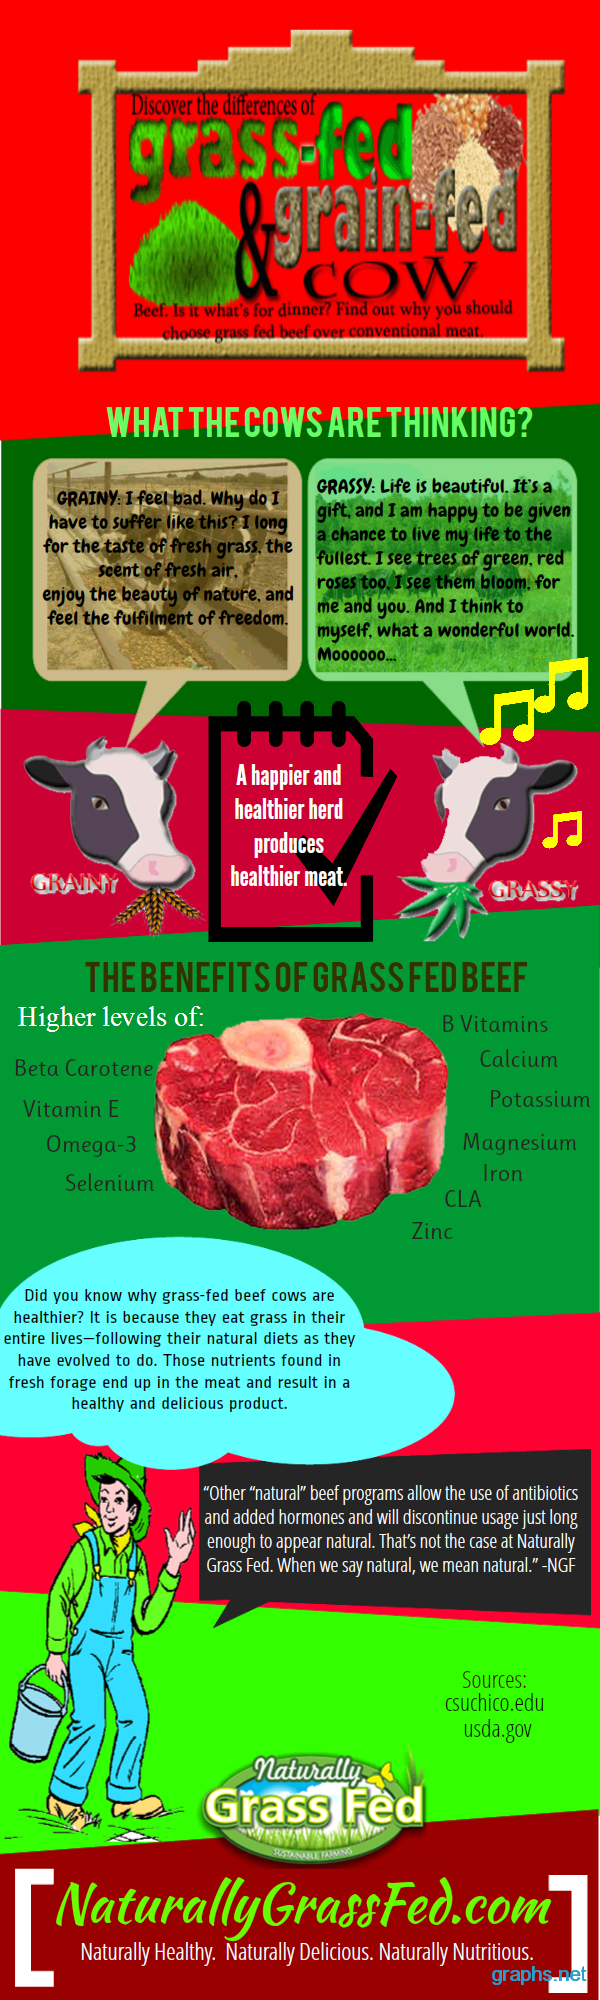 Grass Fed vs. Grain Fed Cows